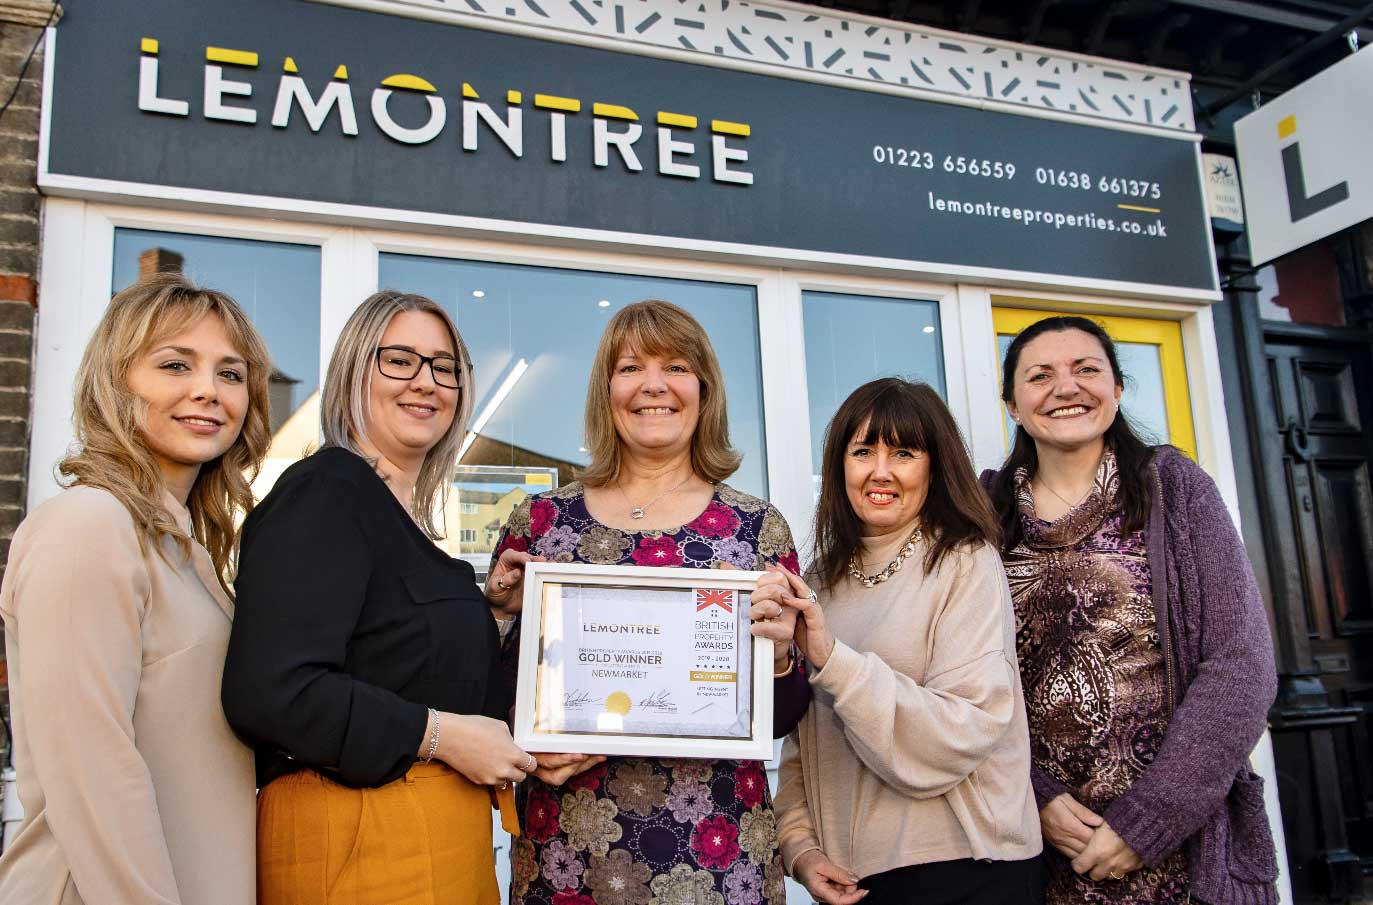 Gold Standard For Lemontree Properties